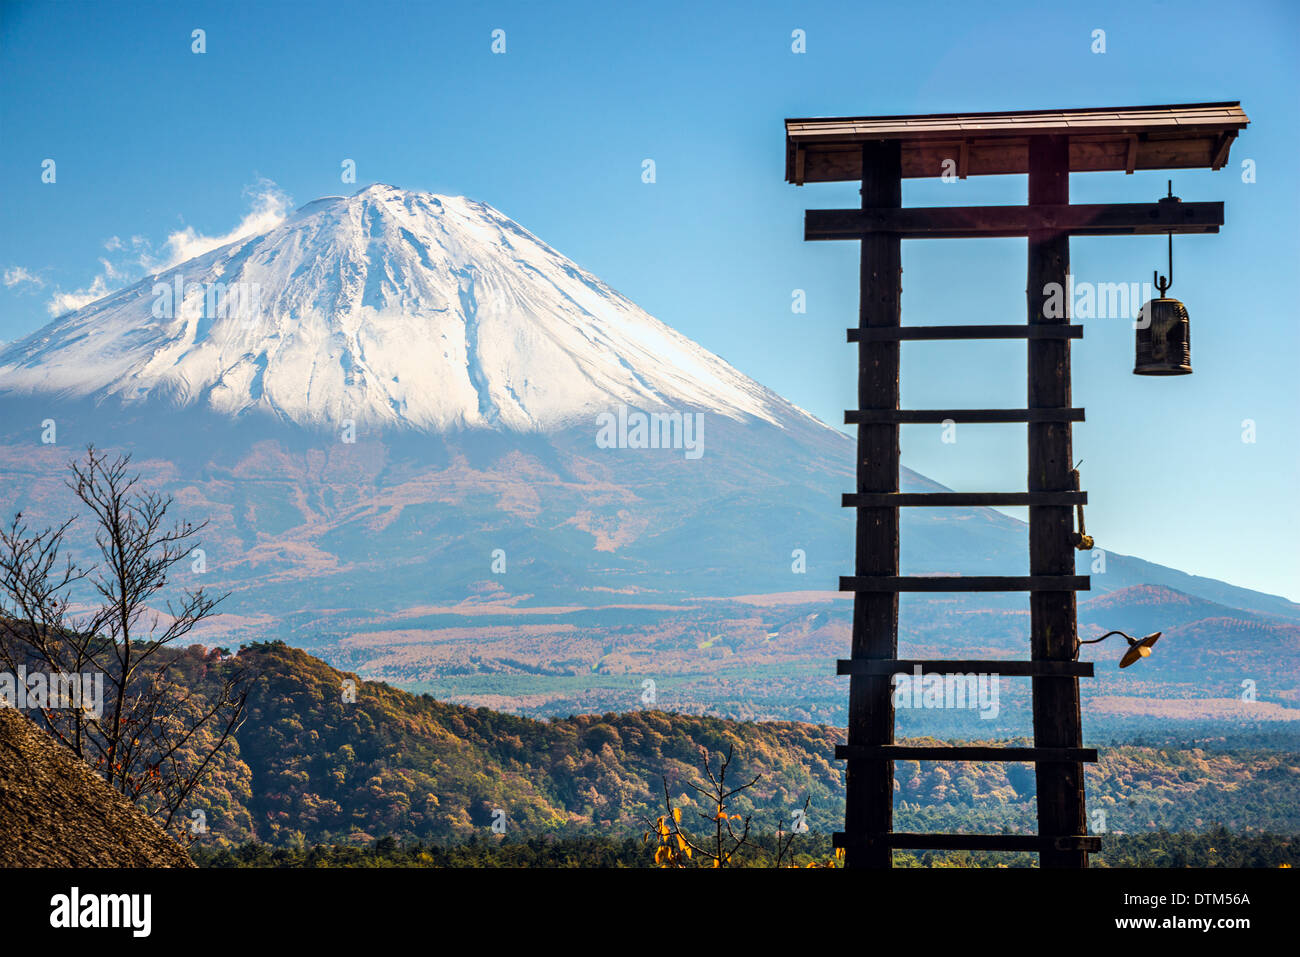 Fuji Mountain and an old village bell tower in Japan. - Stock Image